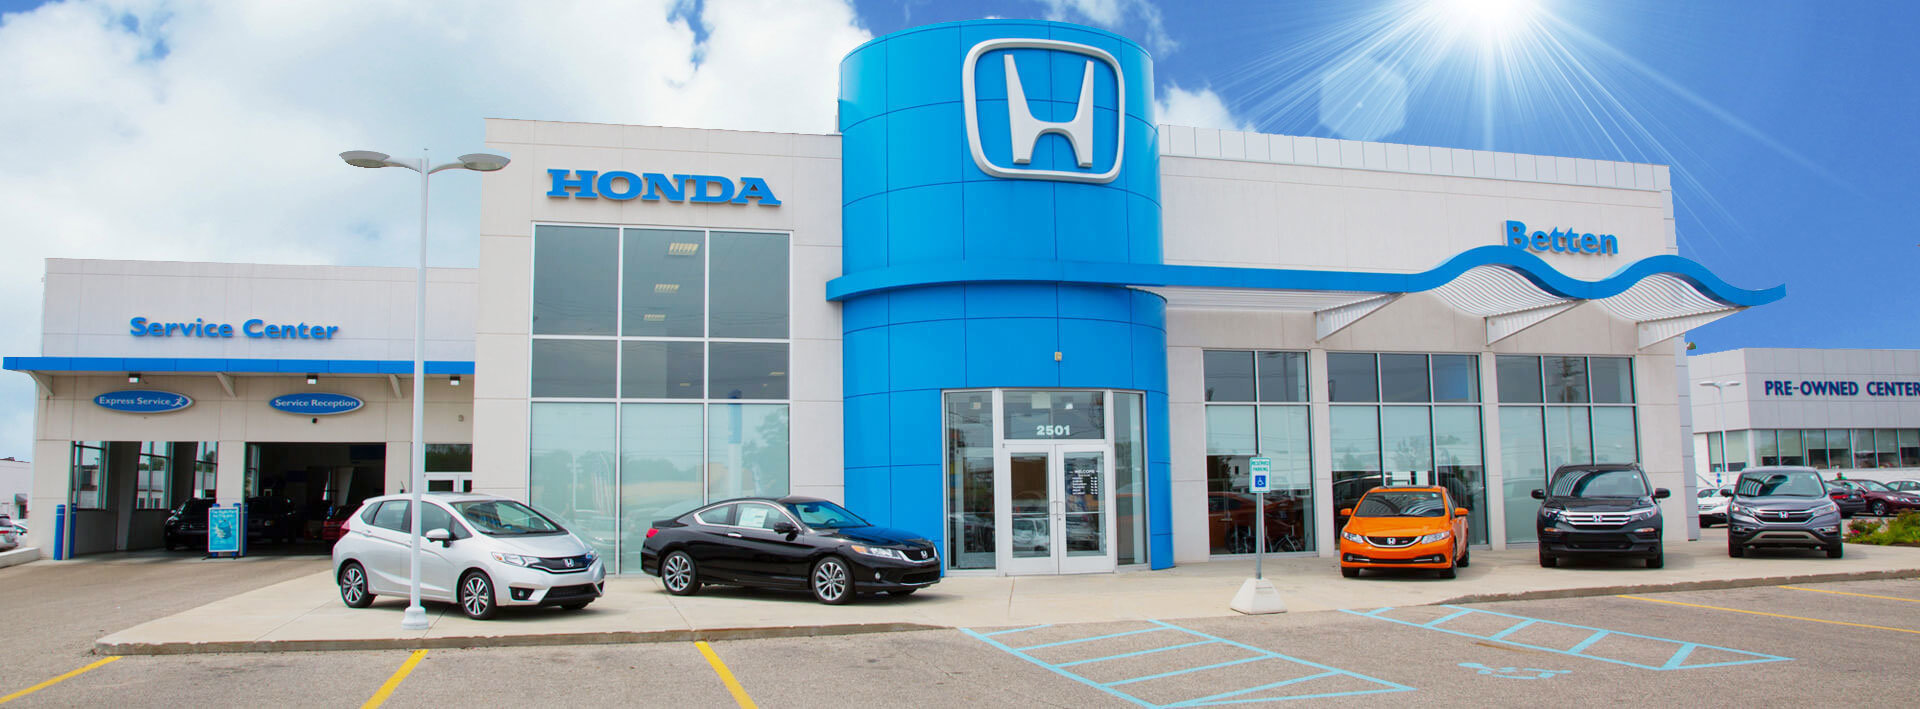 muskegon michigan honda dealership car sales service